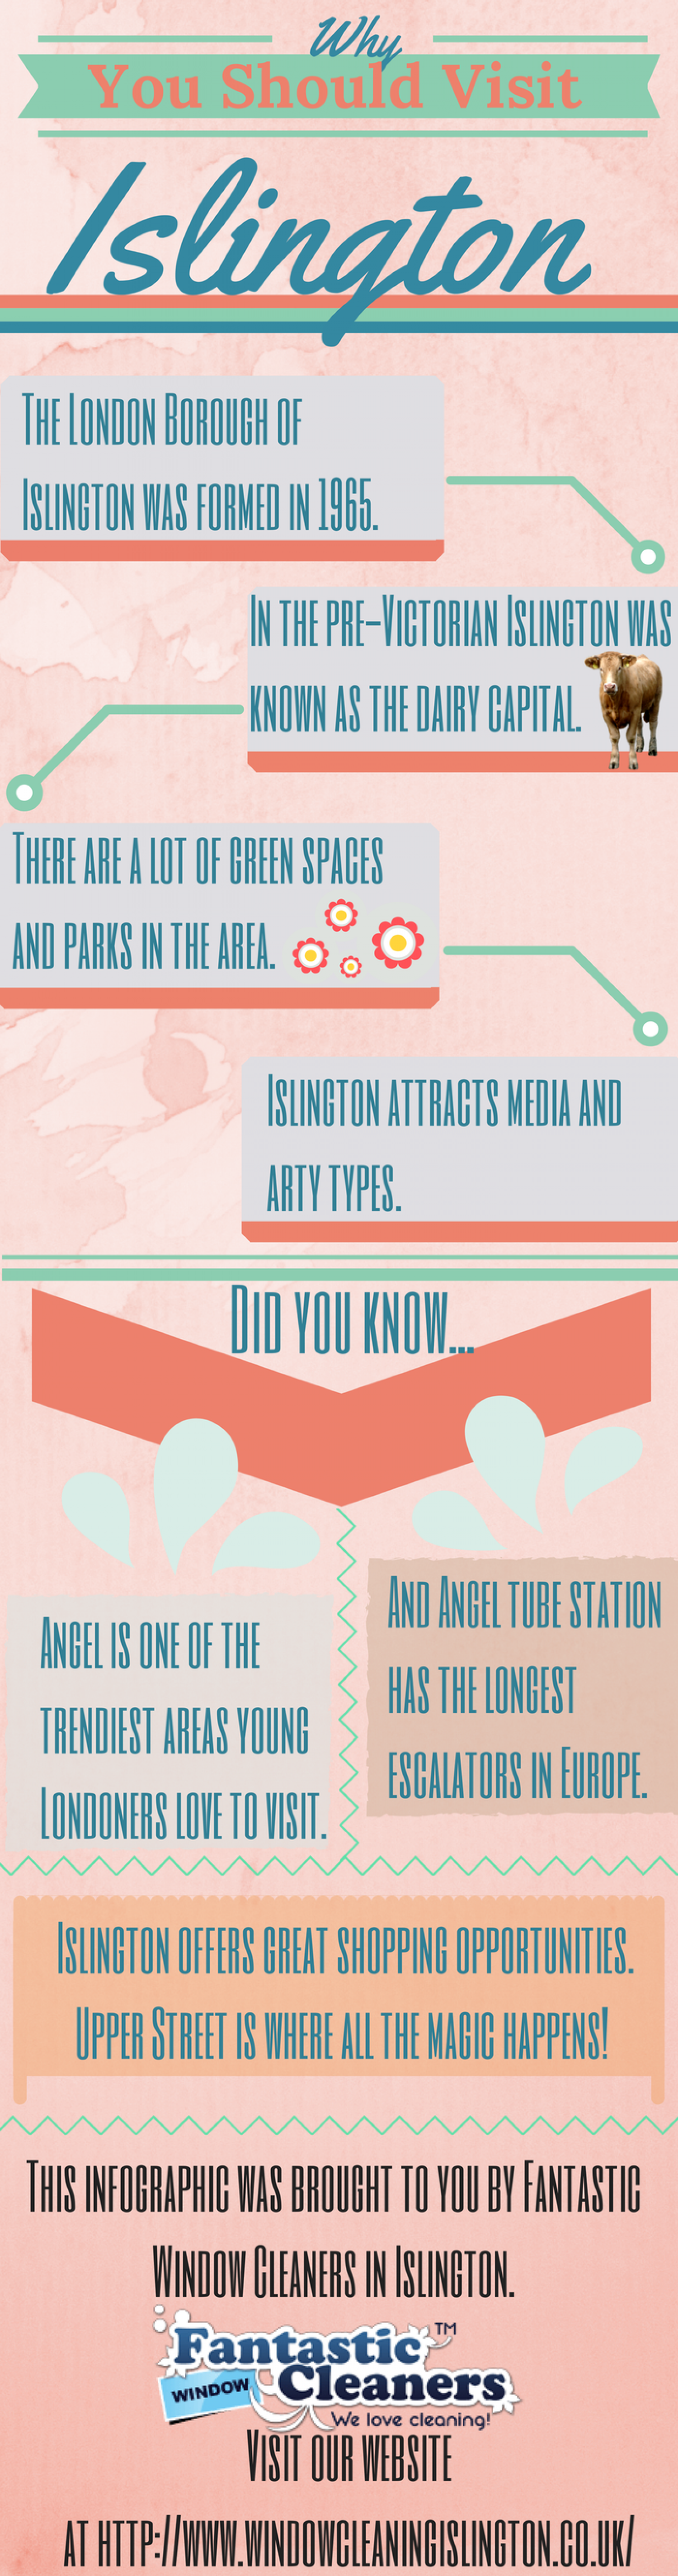 Why You Should Visit Islington Infographic